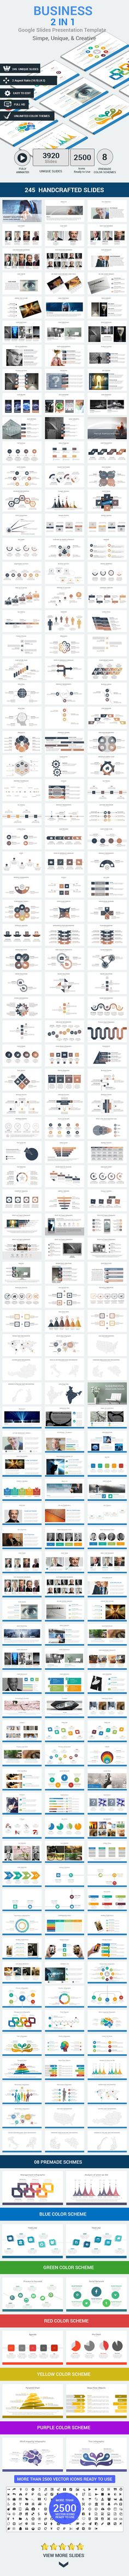 blur google slide template download here http graphicriver net